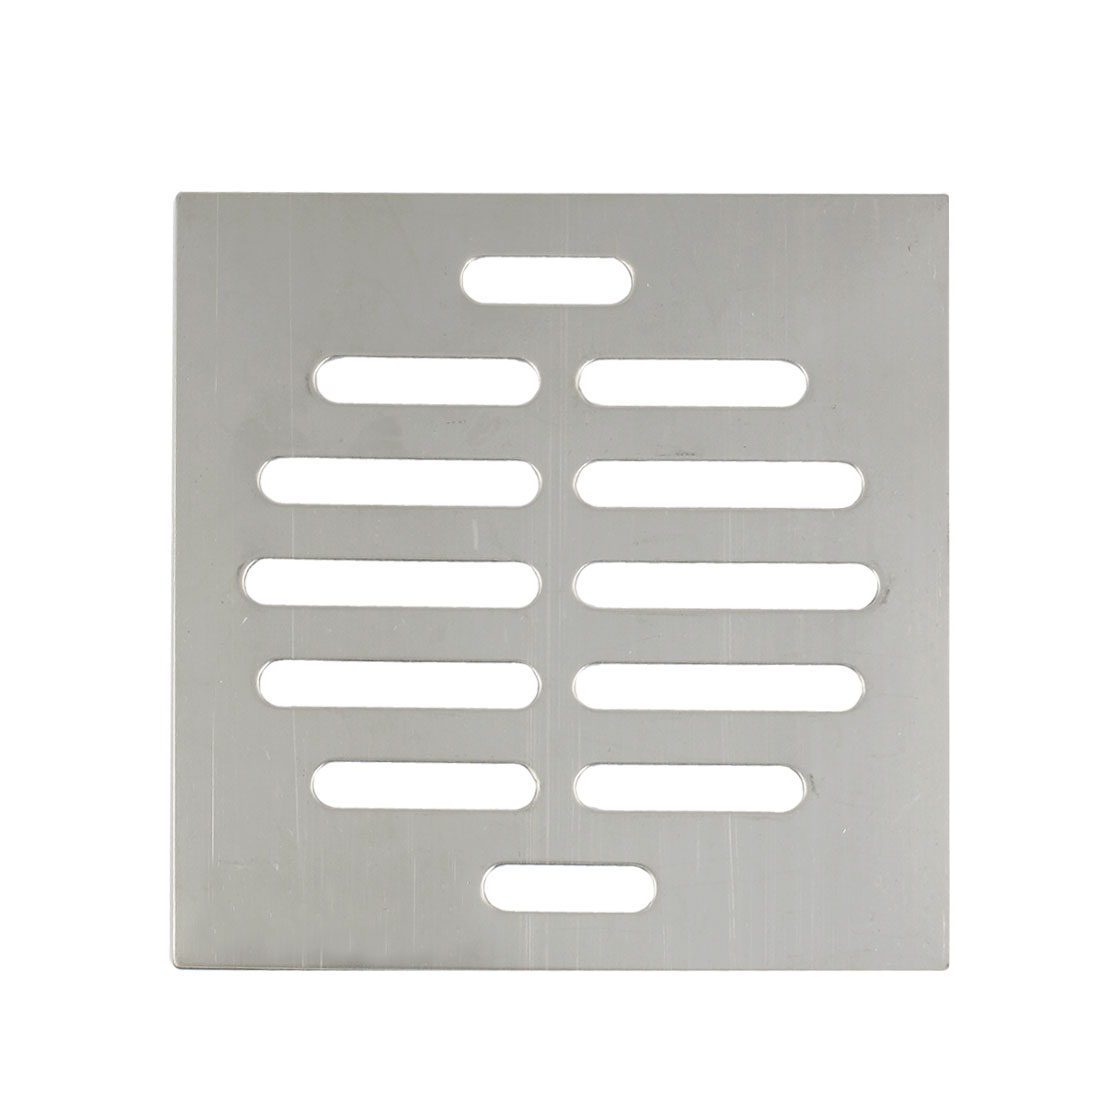 "4"" x 4"" Square 14 Holes Stainless Steel Floor Drain Cover Silver Tone"